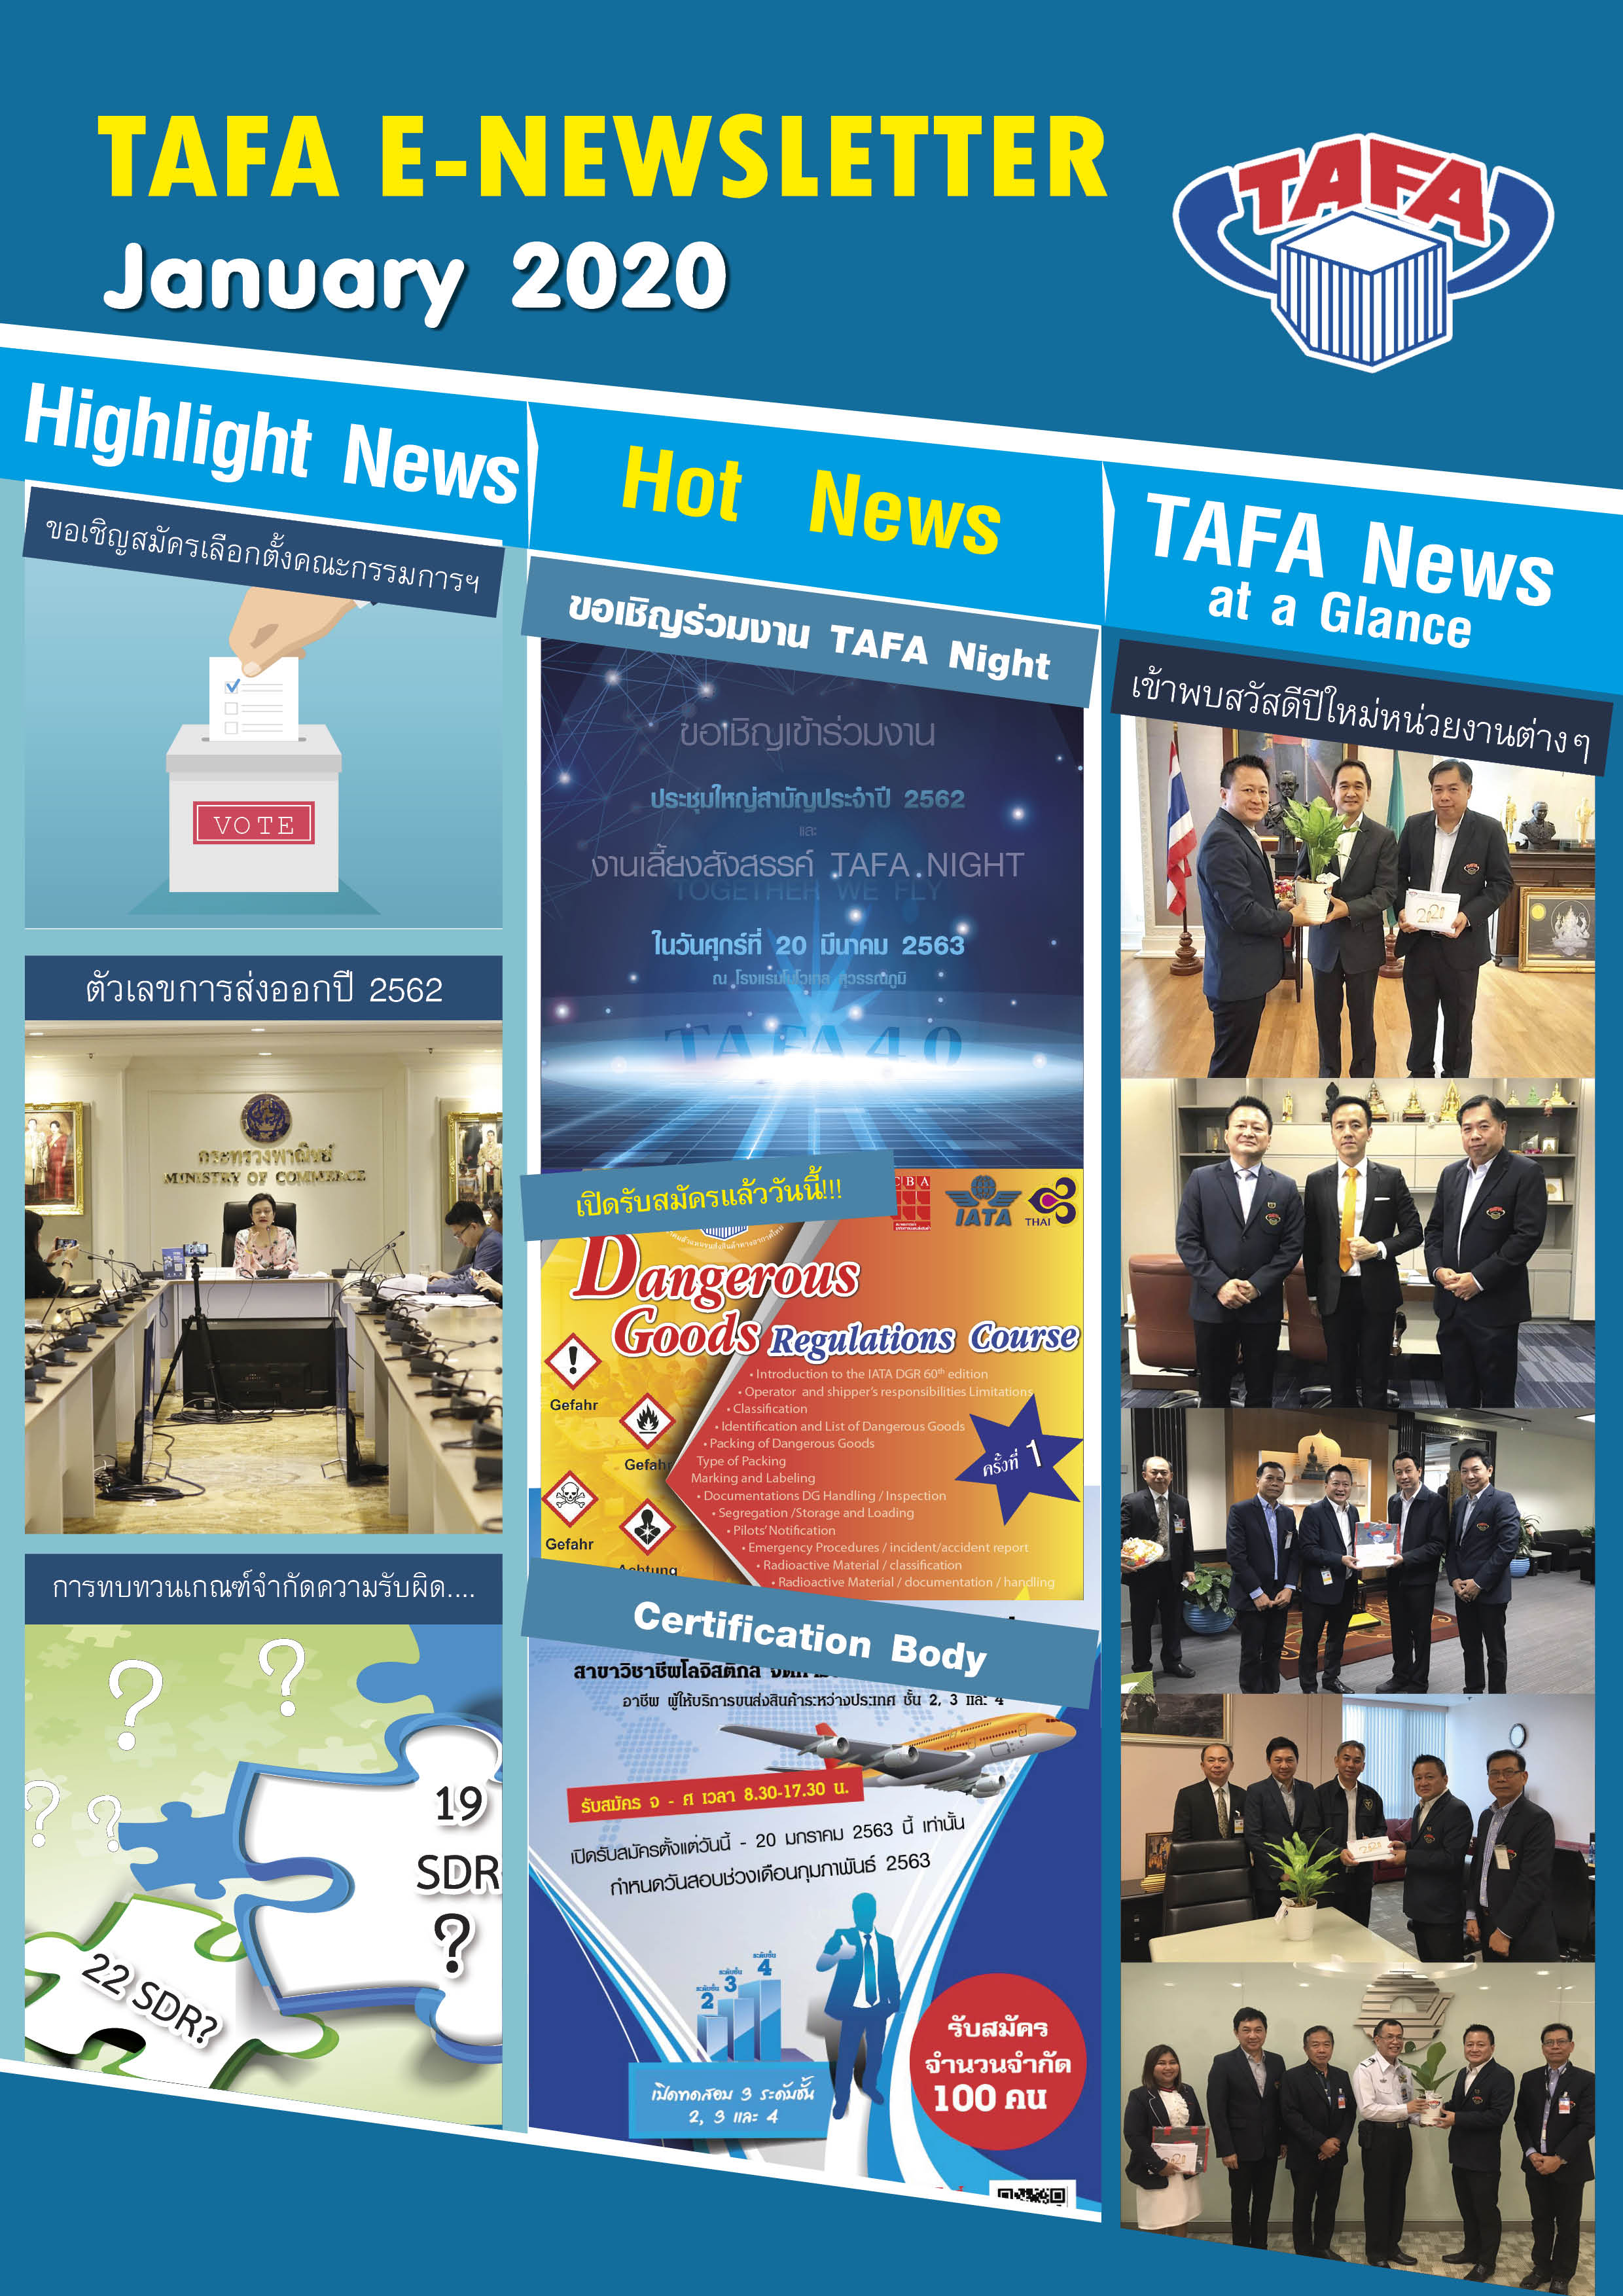 TAFA Newsletter, Issue 1 of January 2020